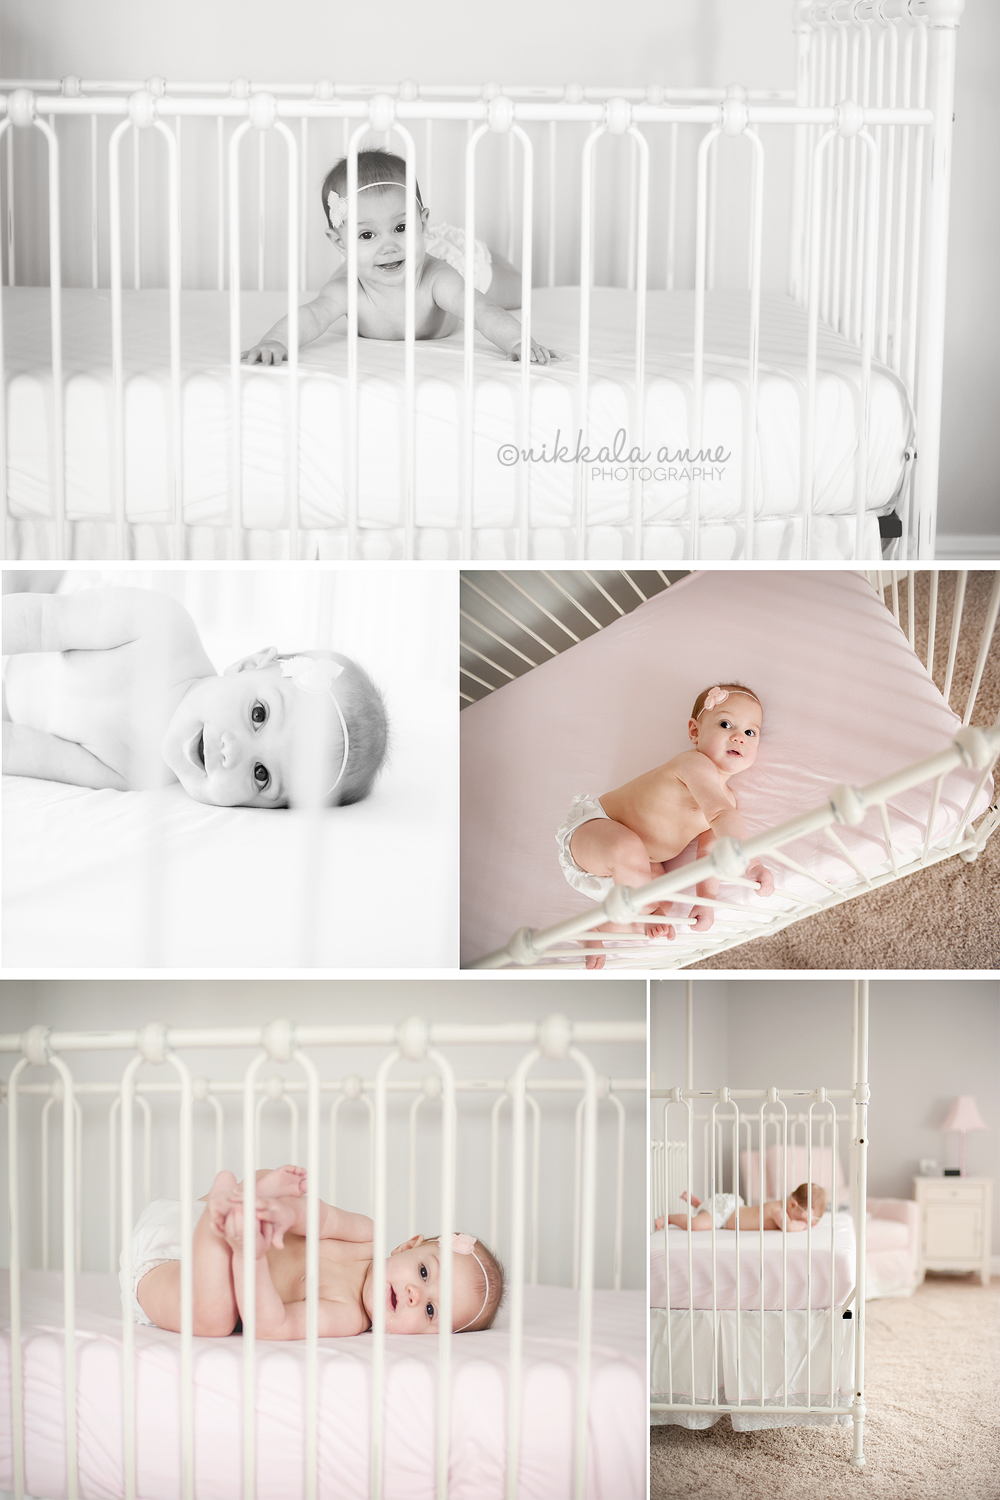 6 Months   Smiles And Toes   Nikkala Anne Photography   6 Month Baby Picture Ideas, Baby Month By Month, Baby Photoshoot Girl